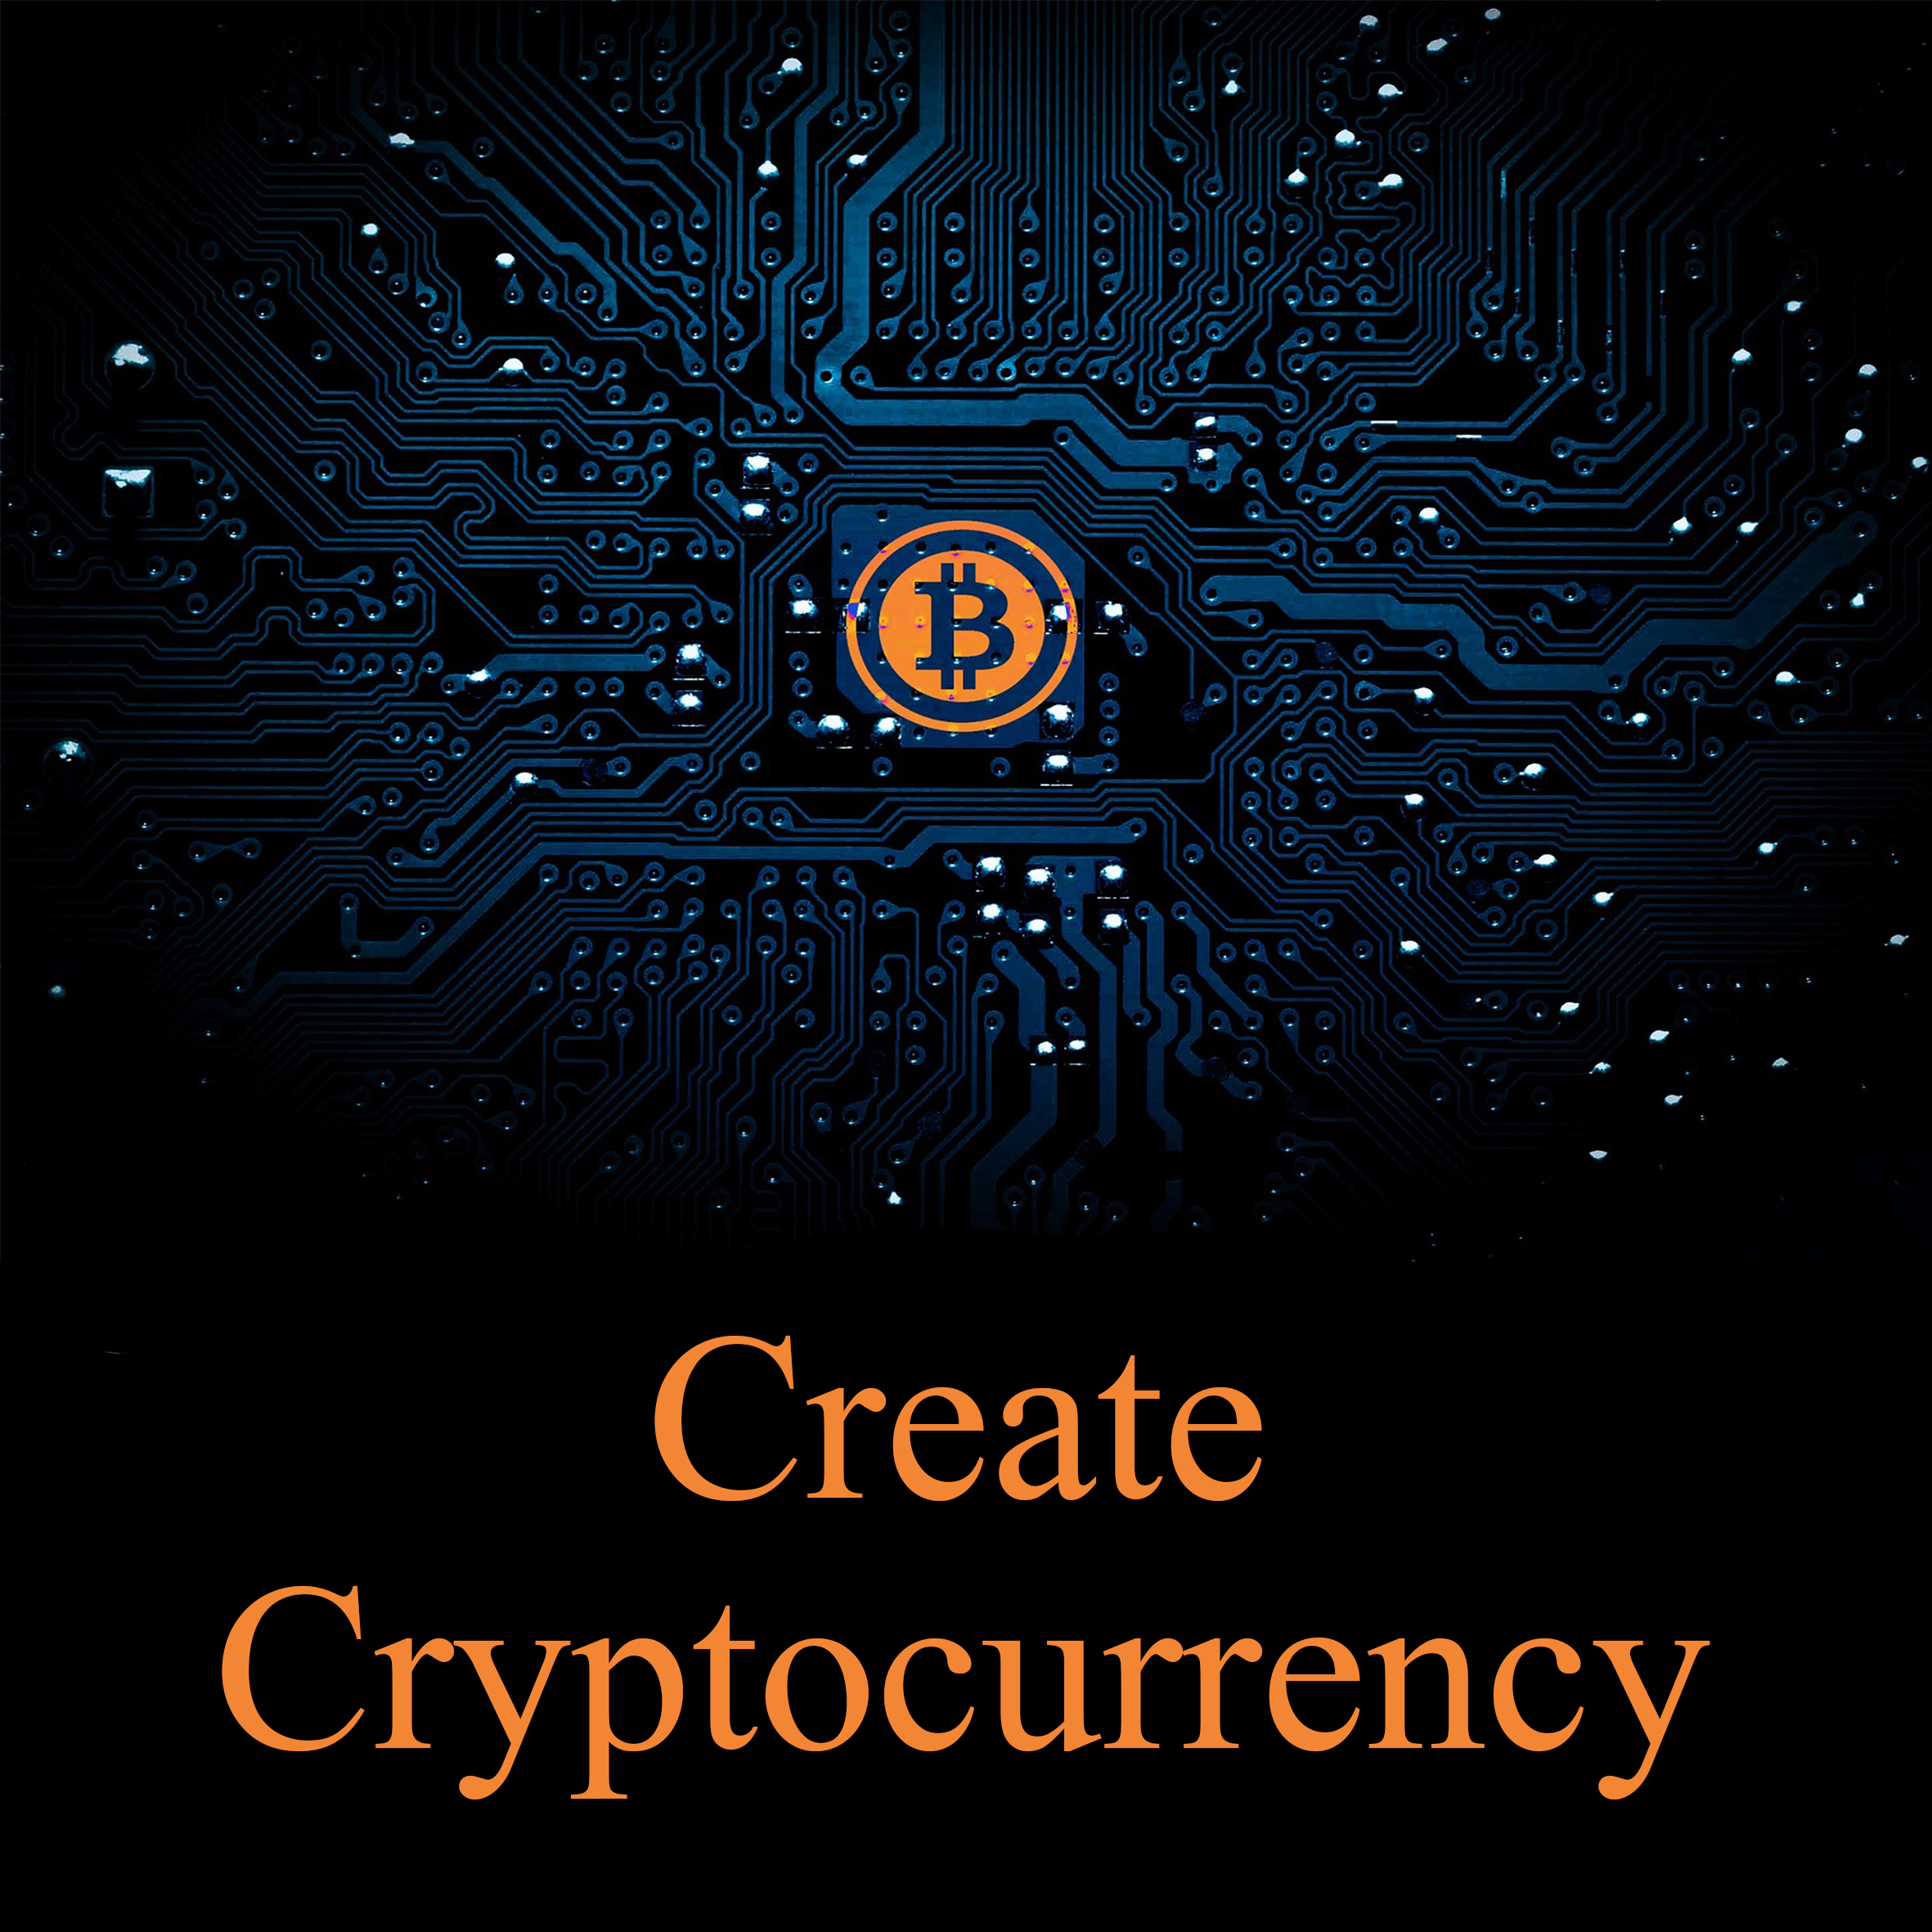 Requirements to create a cryptocurrency